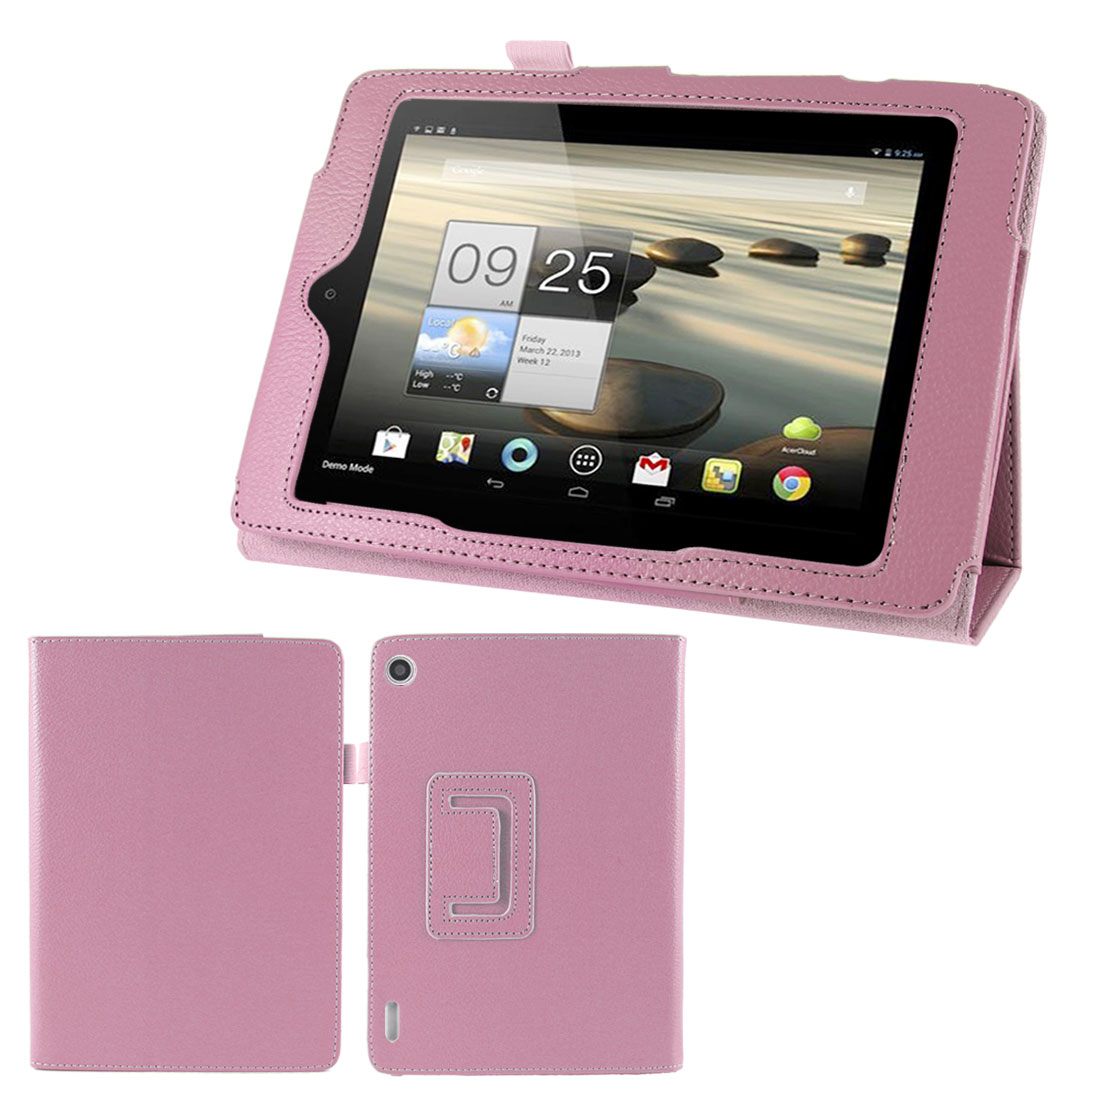 Pink Folio Faux Leather Stand Case Cover for Acer Iconia Tab A1-810 7.9""